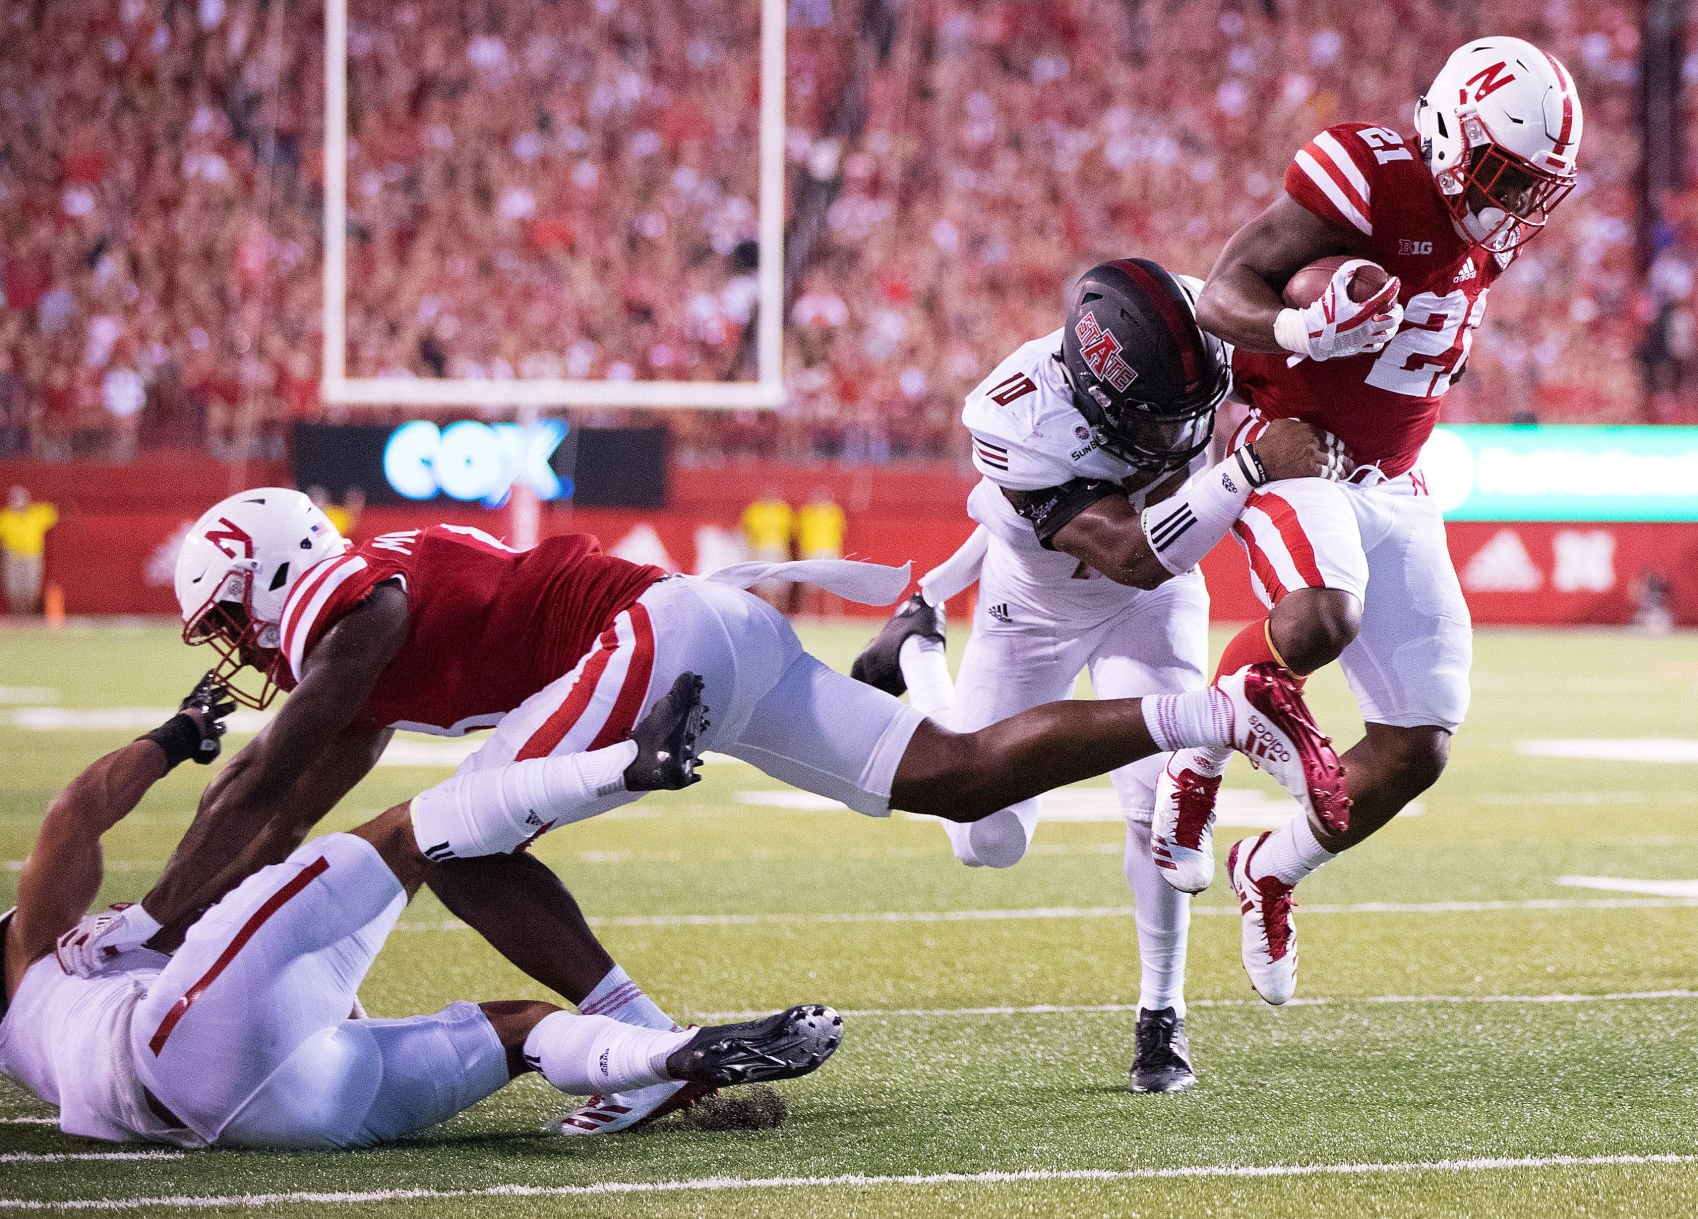 Nebraska's second-half comeback comes up short in loss to Northern Illinois